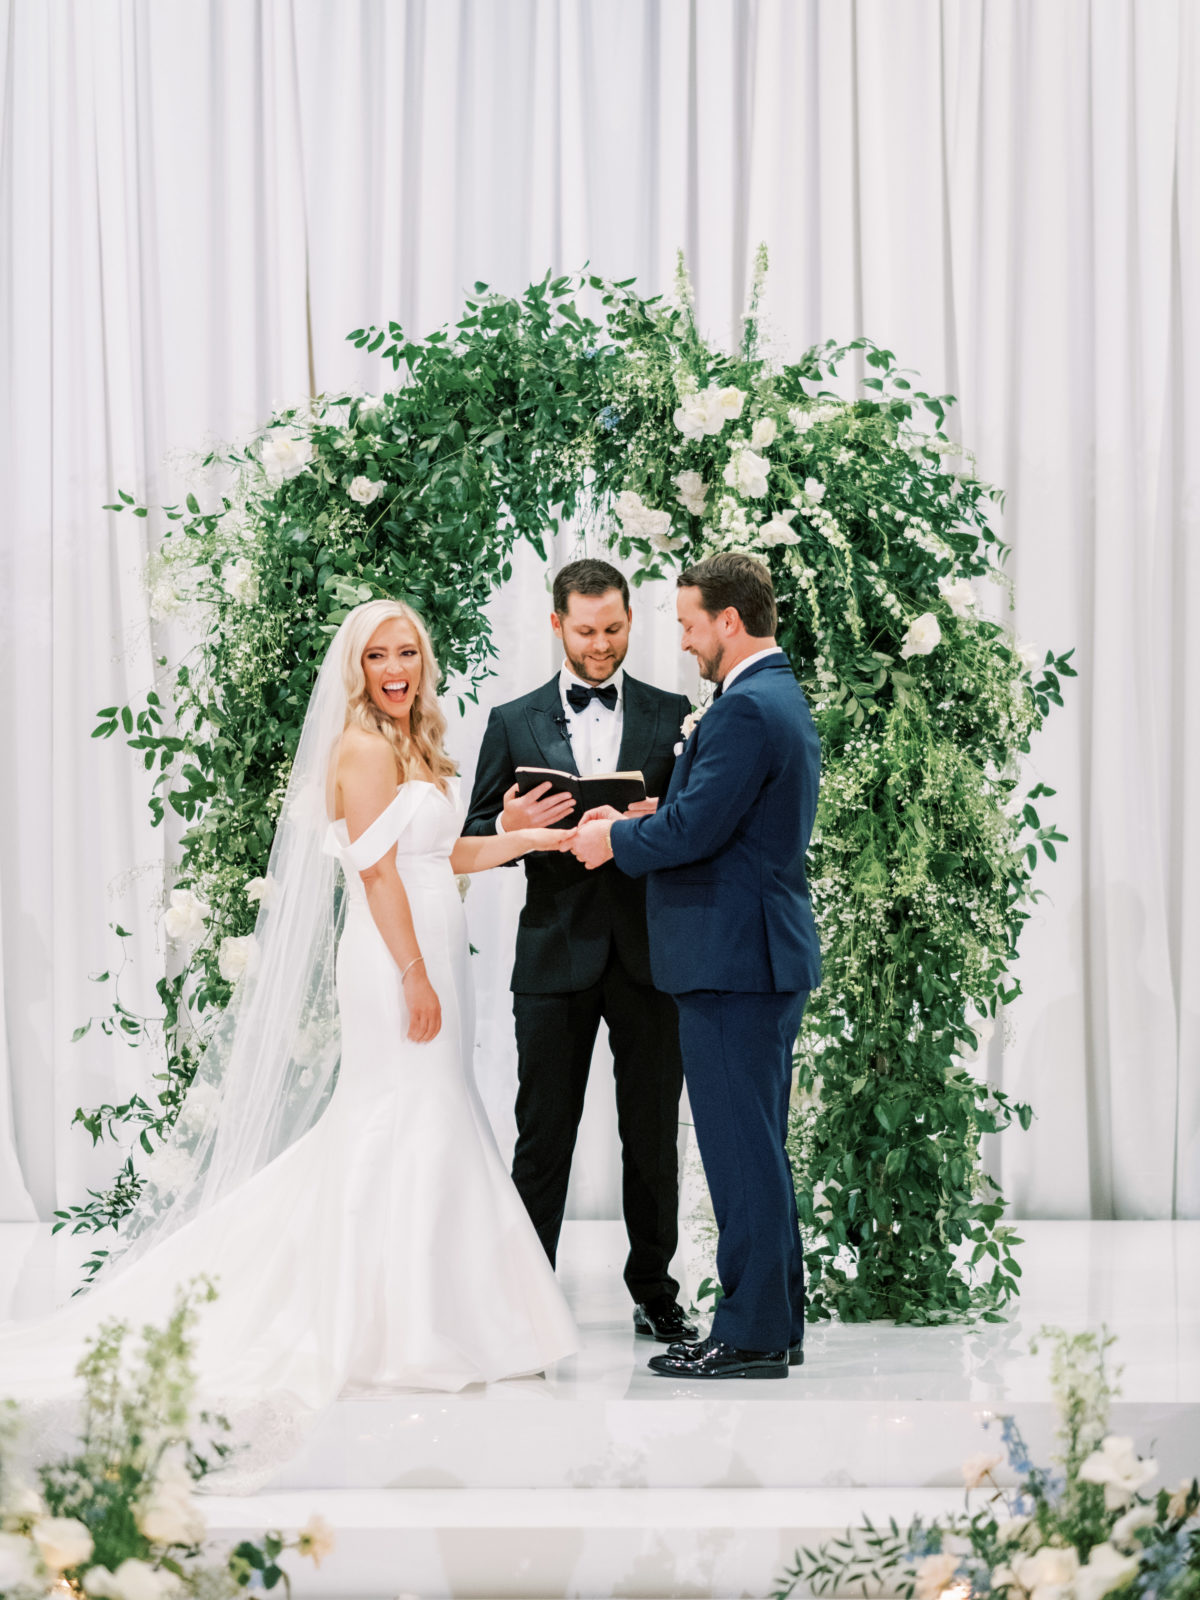 Elise Woods Designs greenery floral arch | Alexa Kay Events